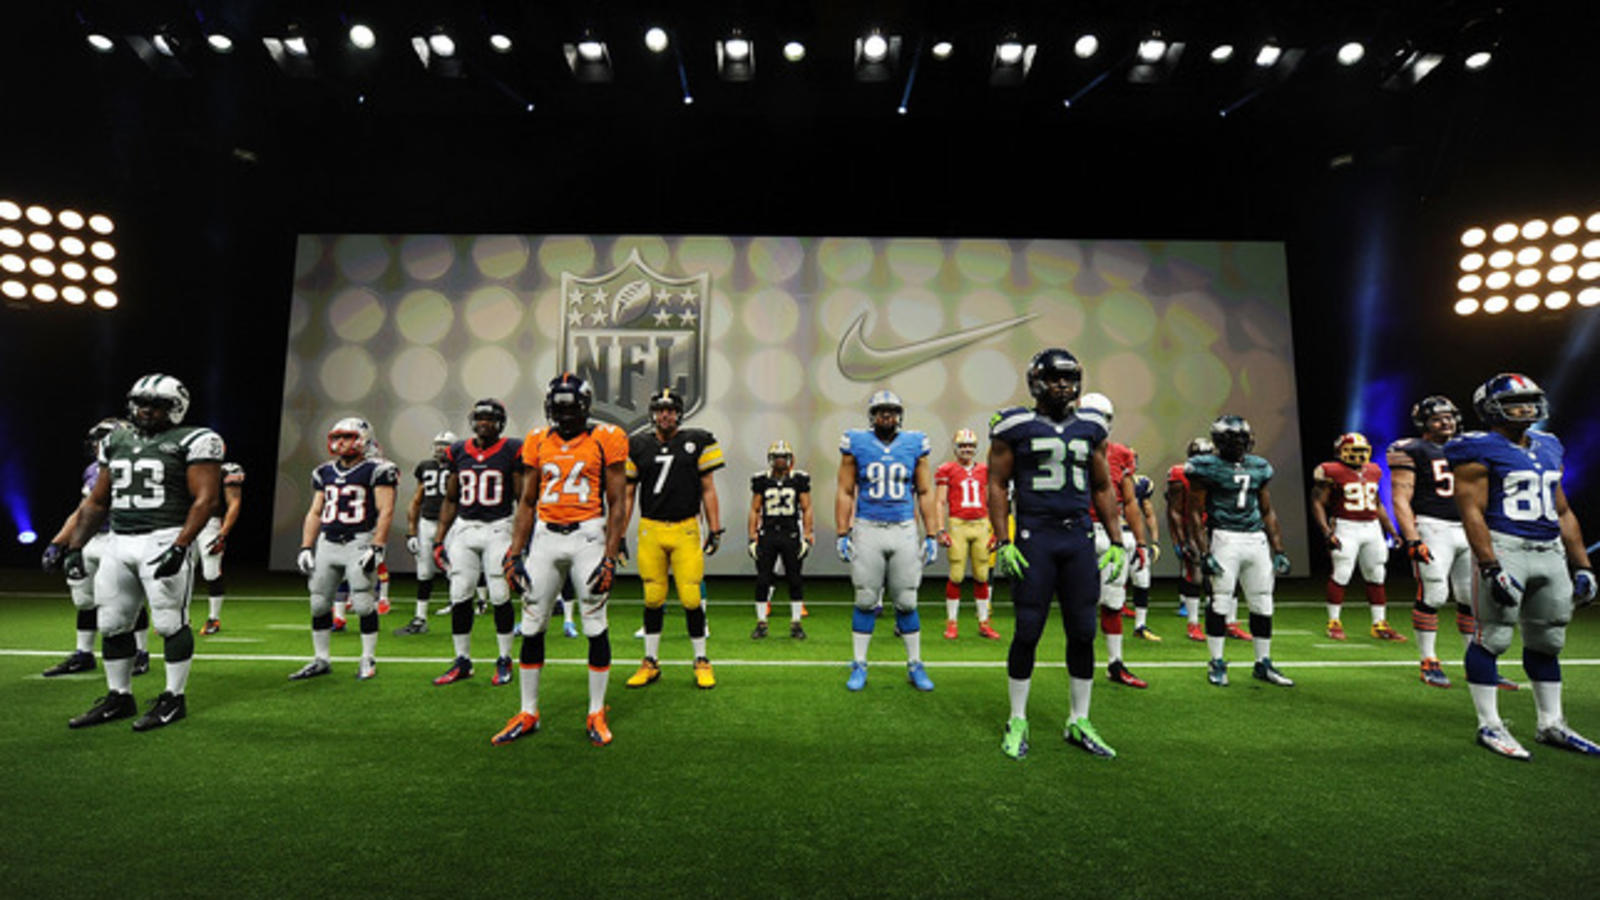 be08e2923 Nike NFL UniformUnveil Players01 03APR2012 large.  Nike NFL 2012 TeamUniforms 03APR large.  Nike NFL UniformUnveil Players01 03APR2012 large